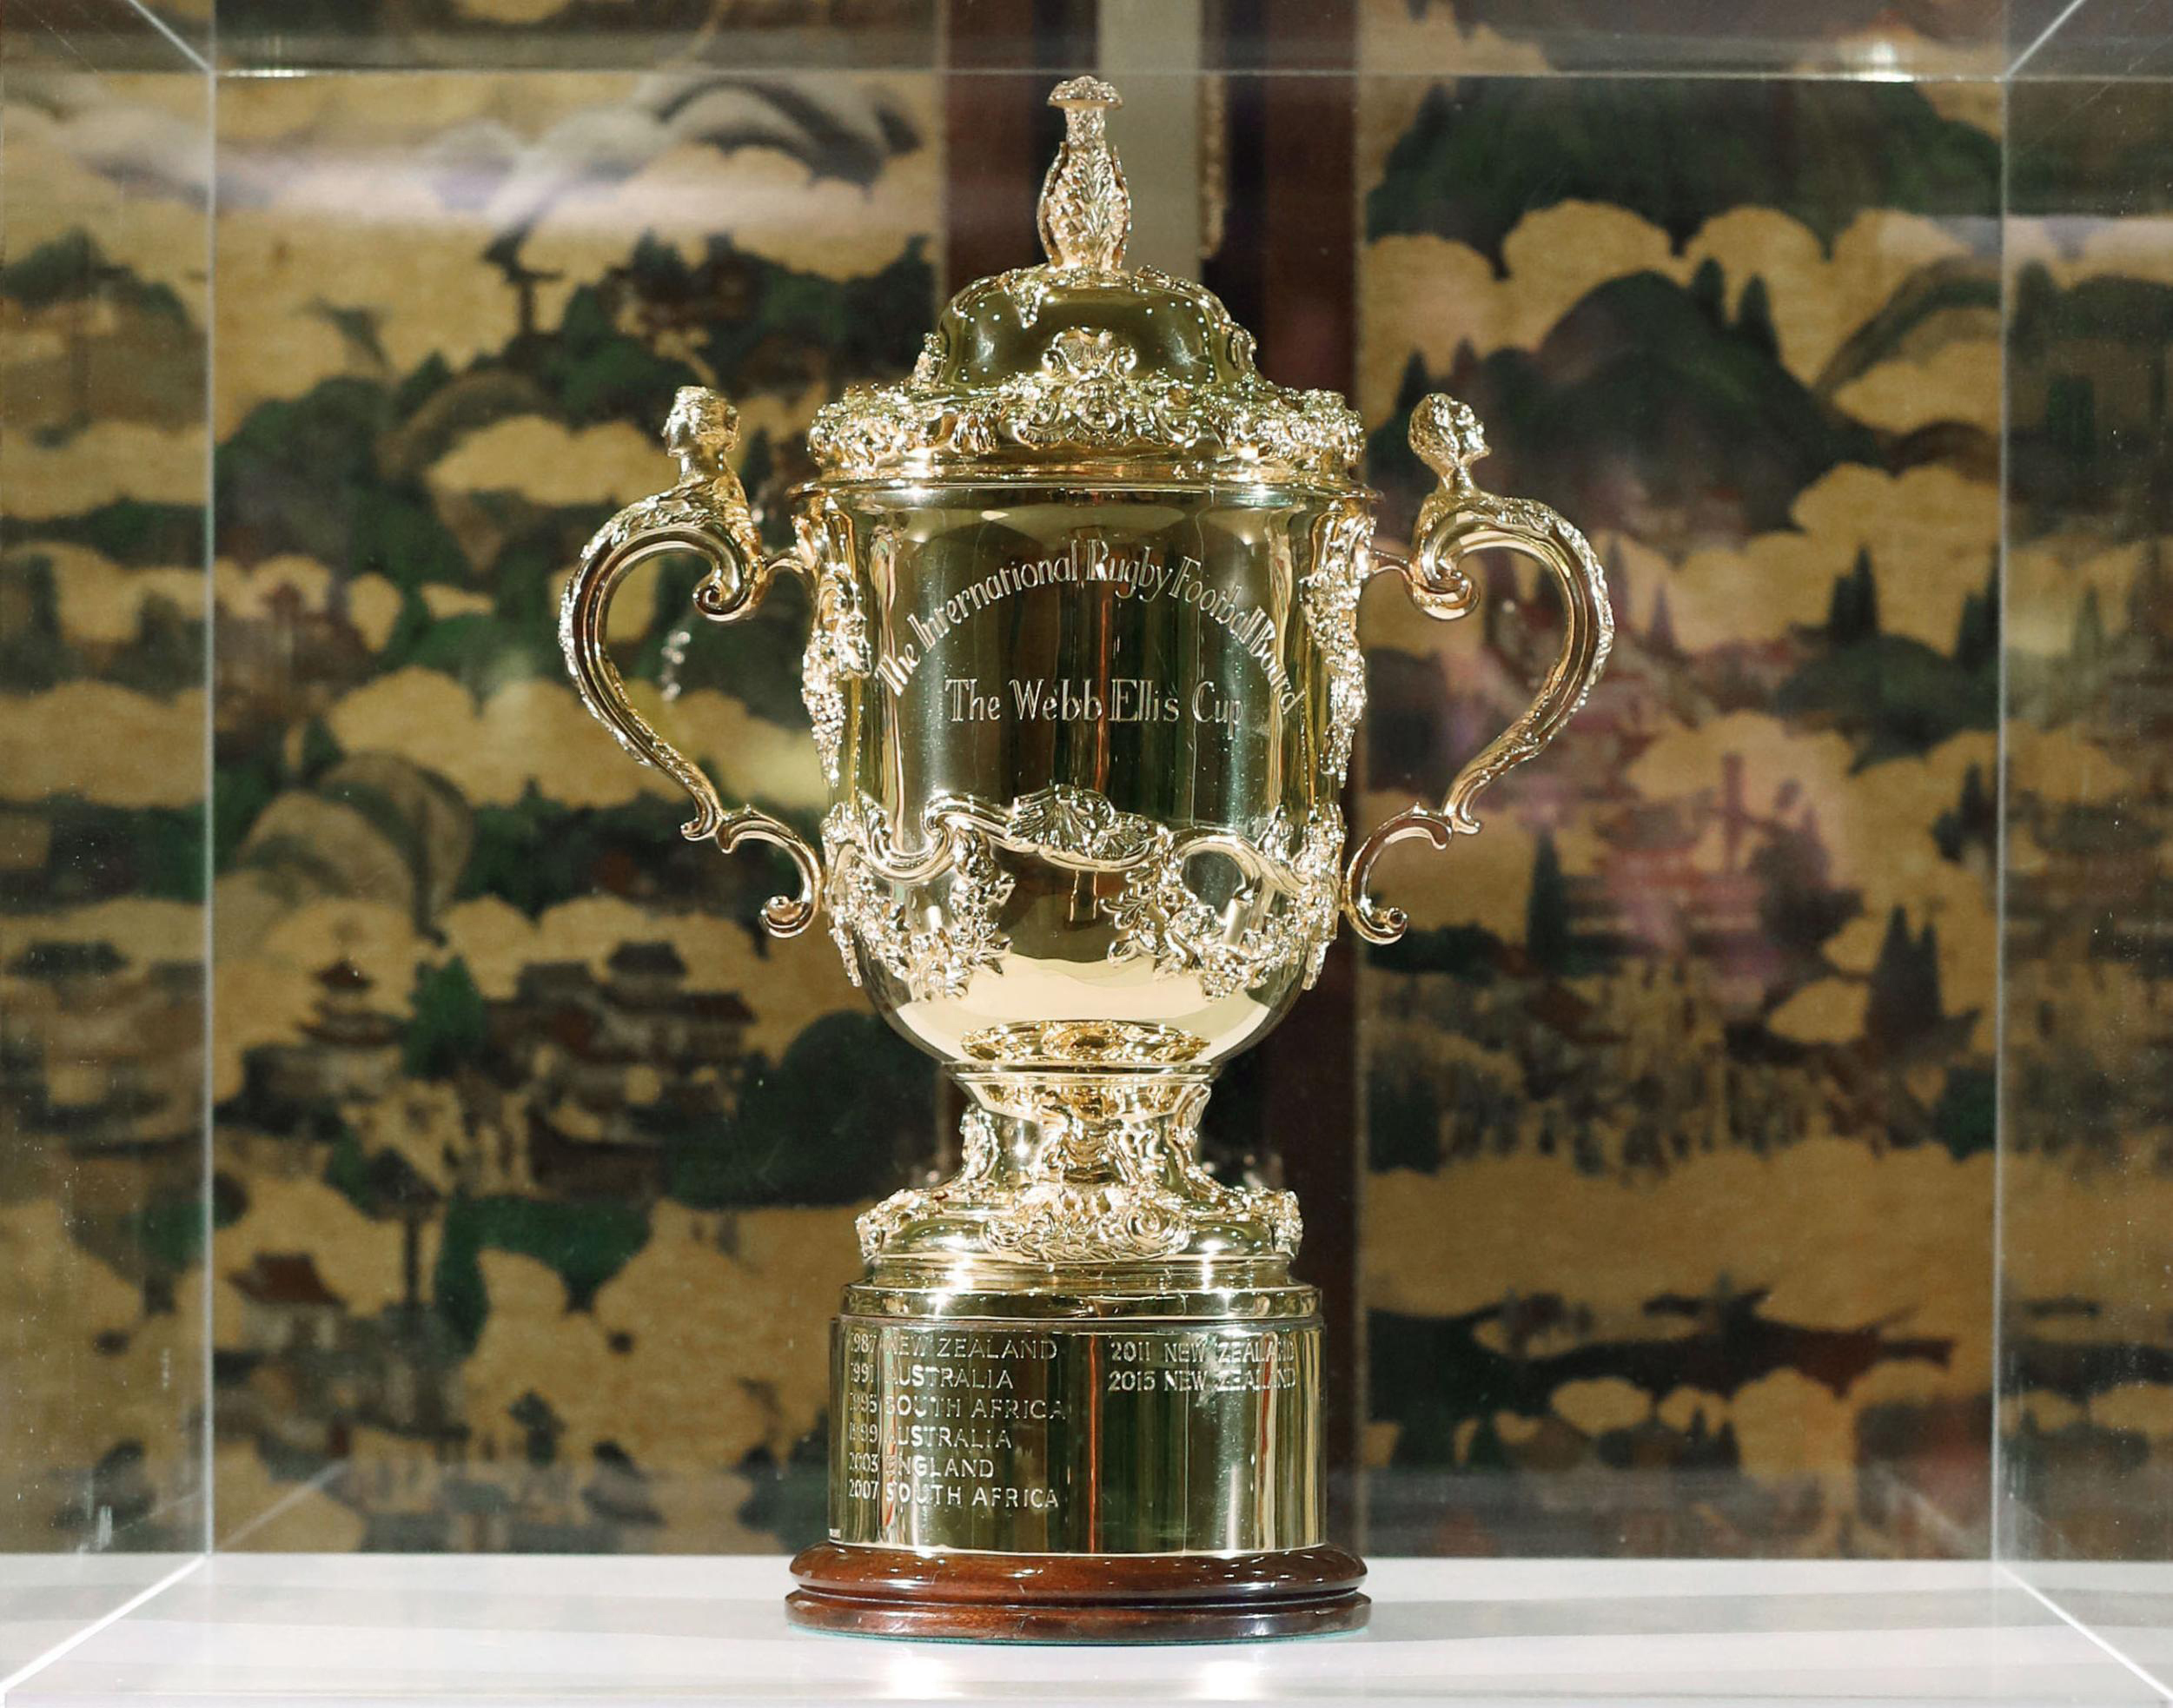 The Webb Ellis Cup is displayed in Kyoto, Japan at the draw for the pool stage of the 2019 Rugby World Cup tournament.